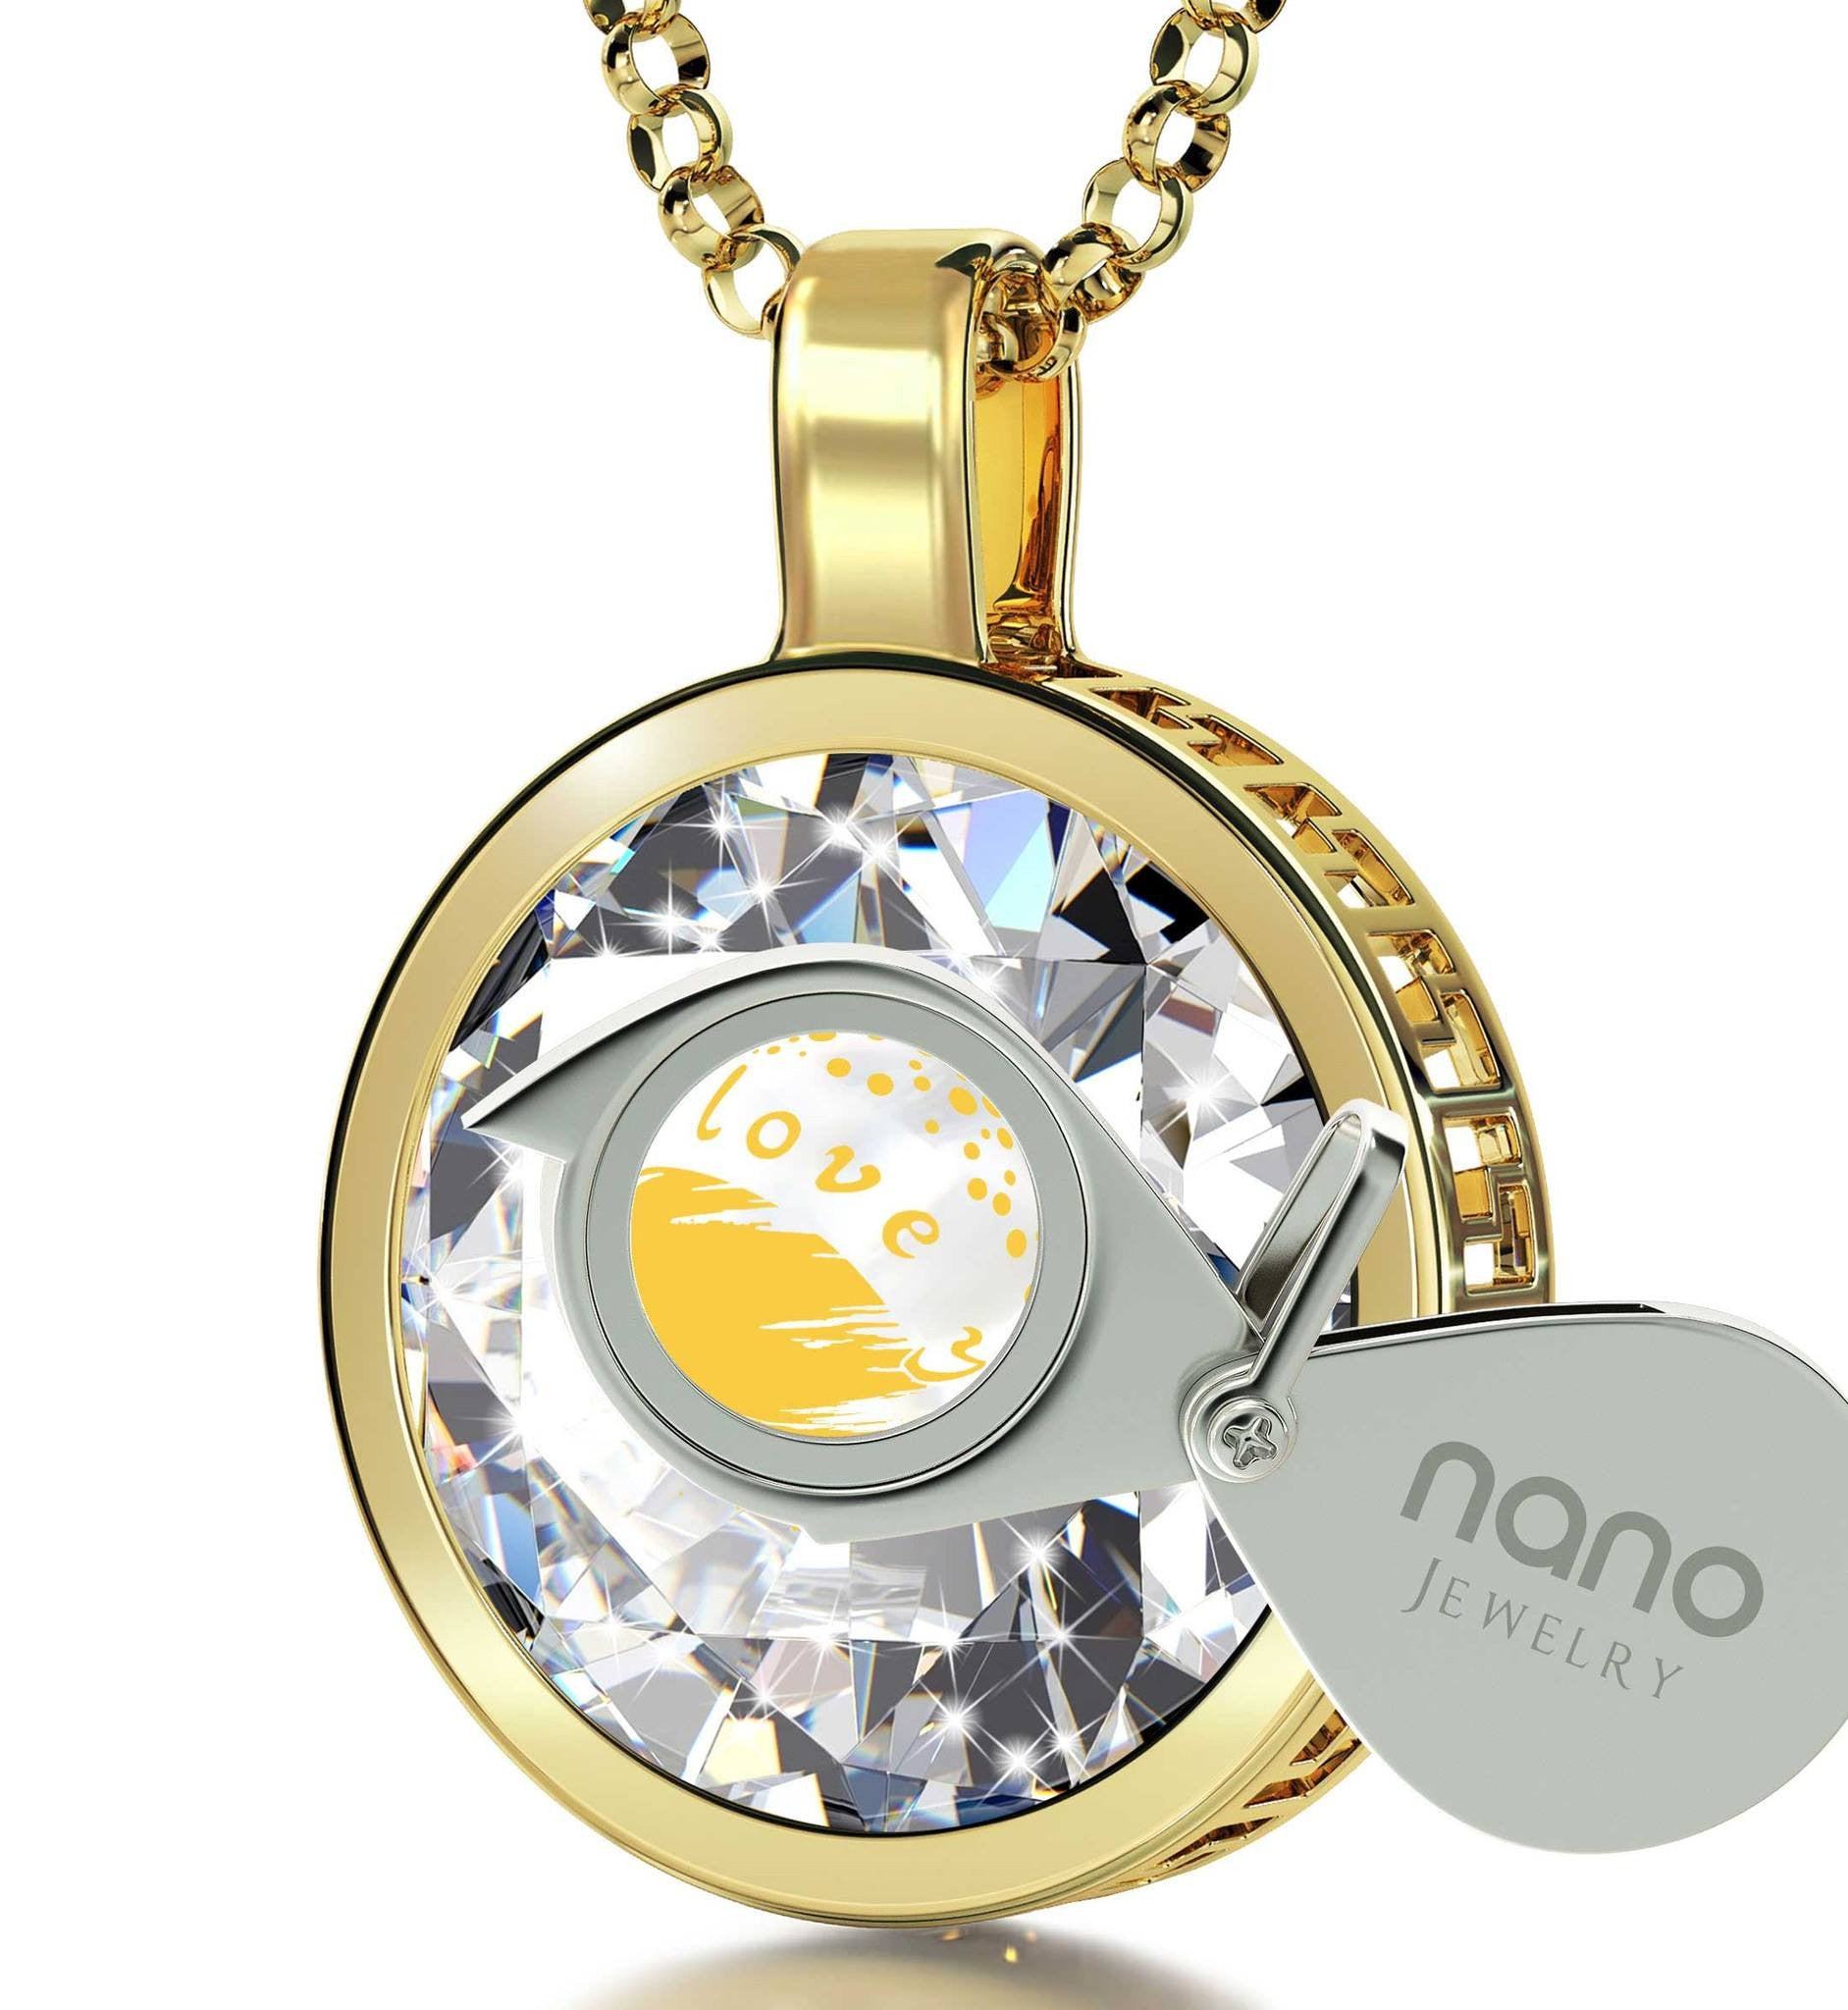 """Good Presents for Girlfriend, 24k Engraved Jewelry. Gold Filled Necklace, Great Gifts for Wife, Nano"""